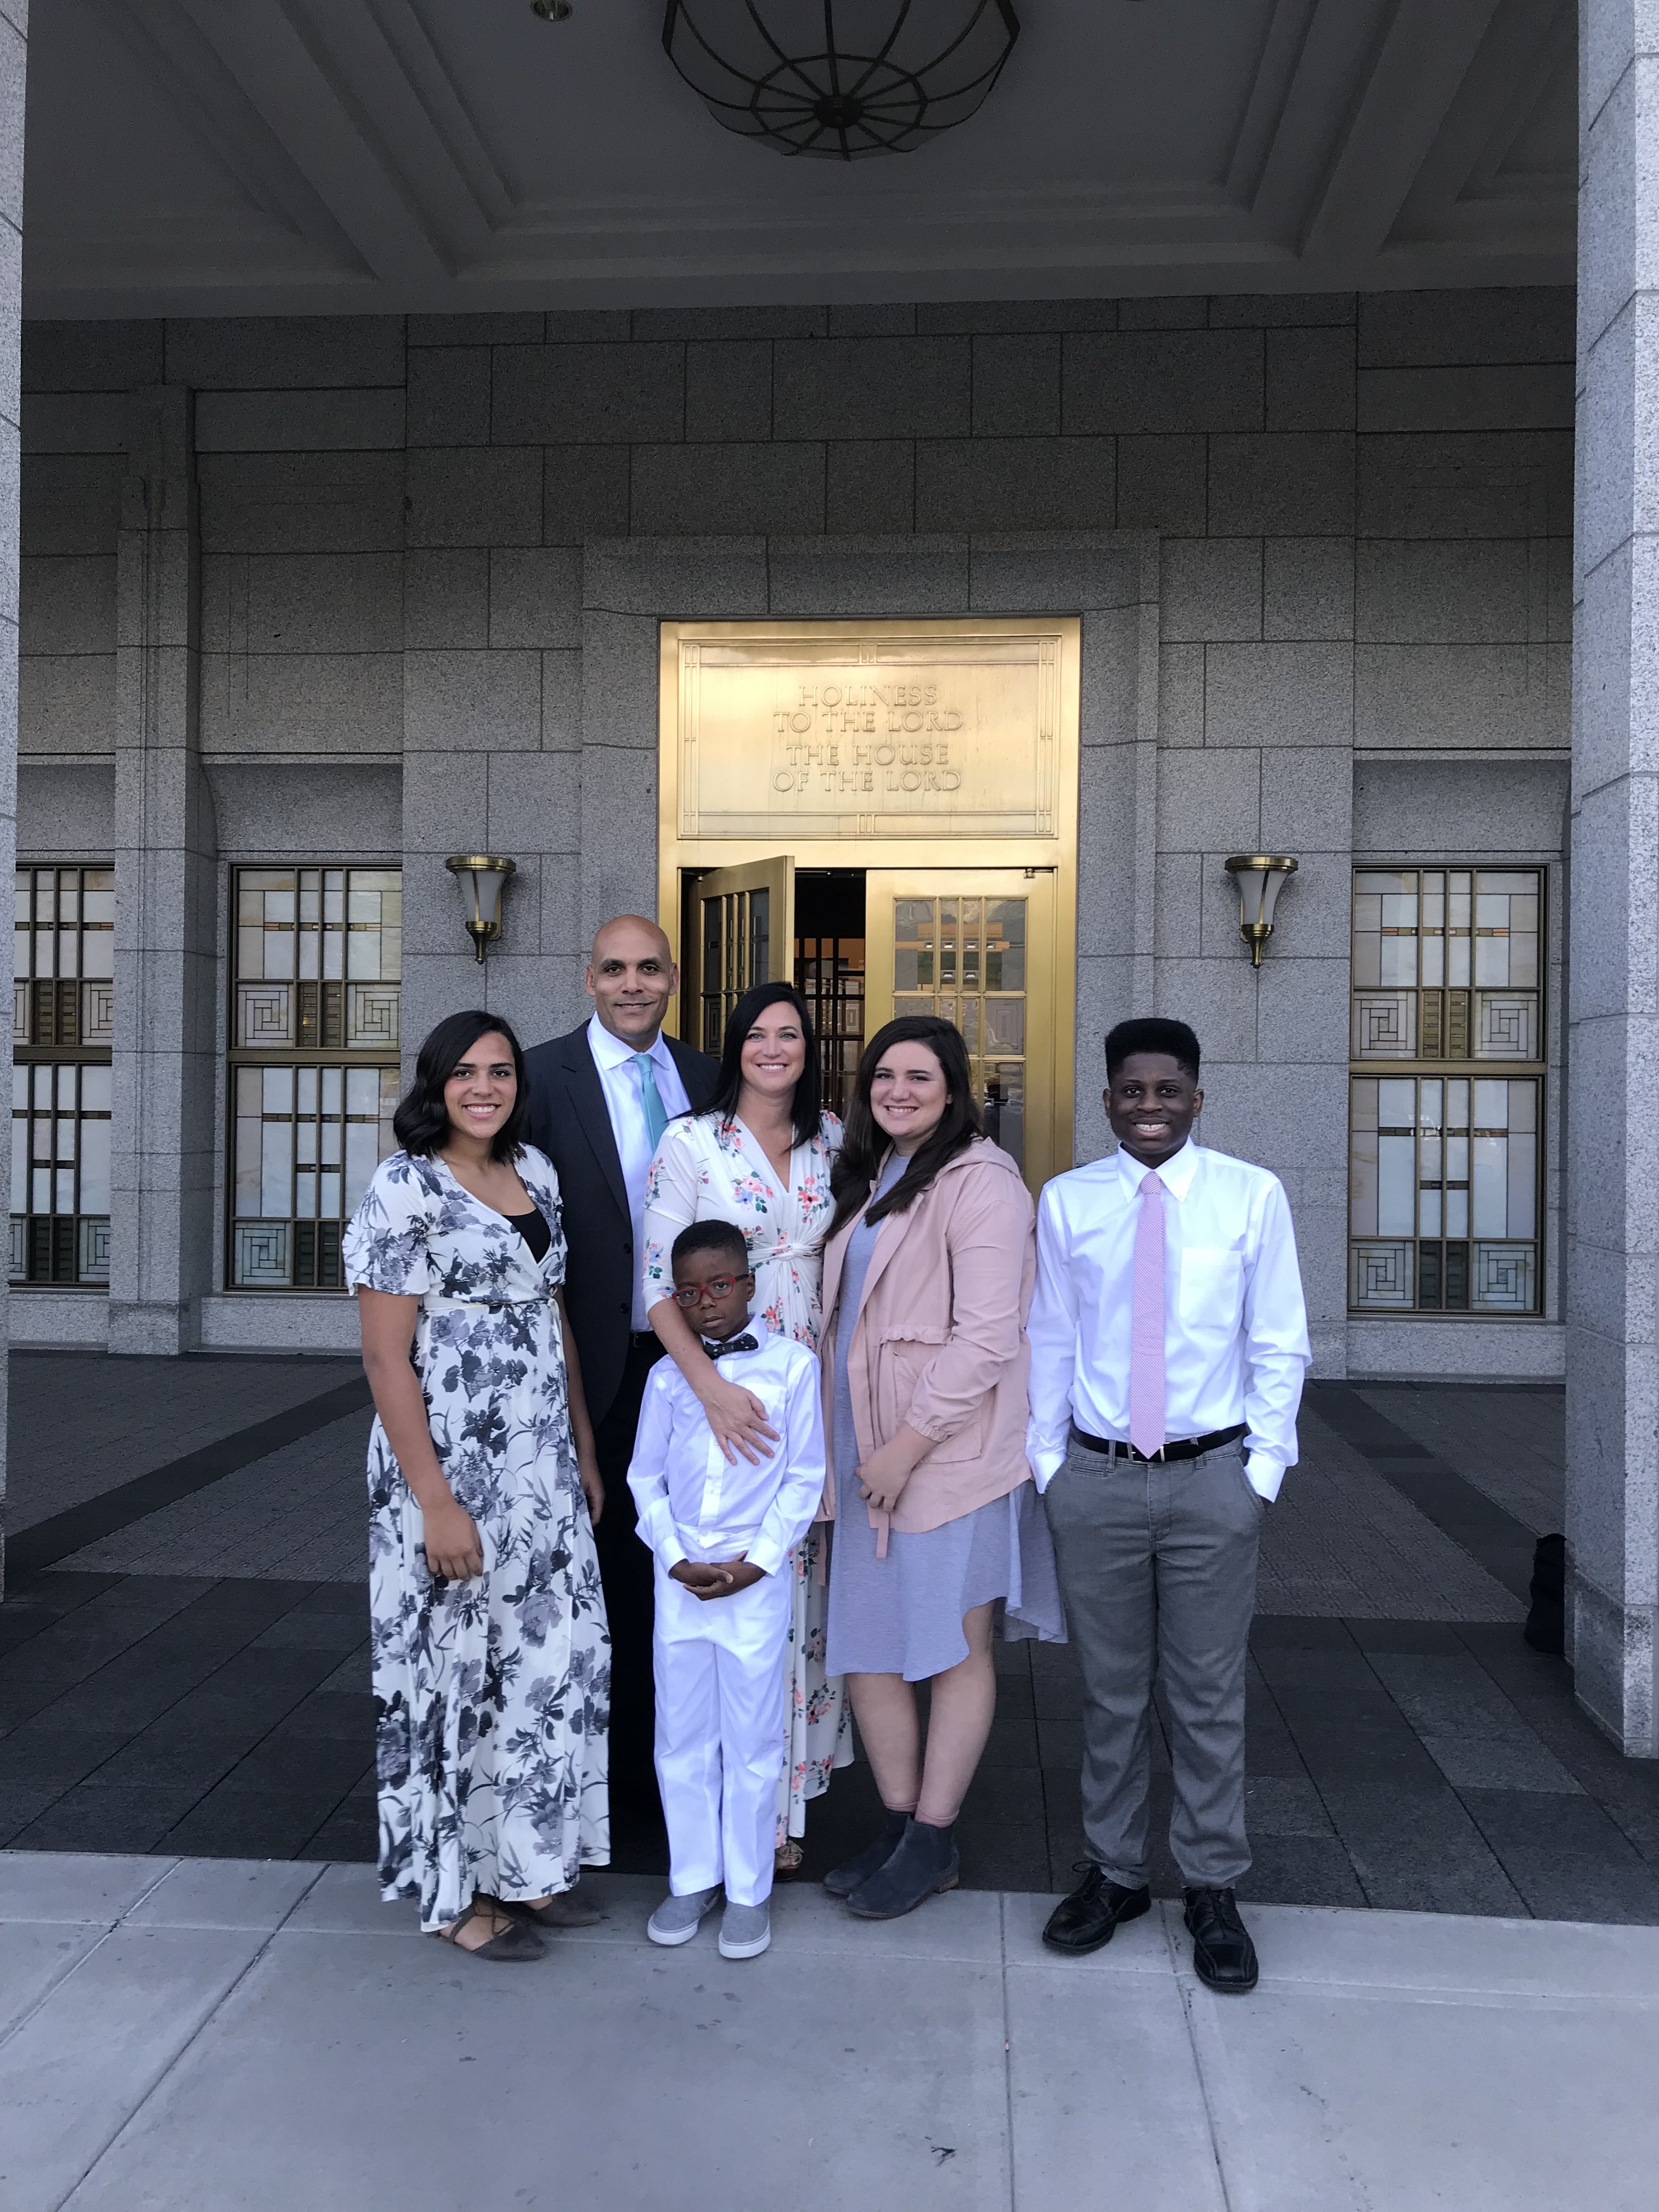 The Ed and Jana Kehl family outside a temple of The Church of Jesus Christ of Latter-day Saints.